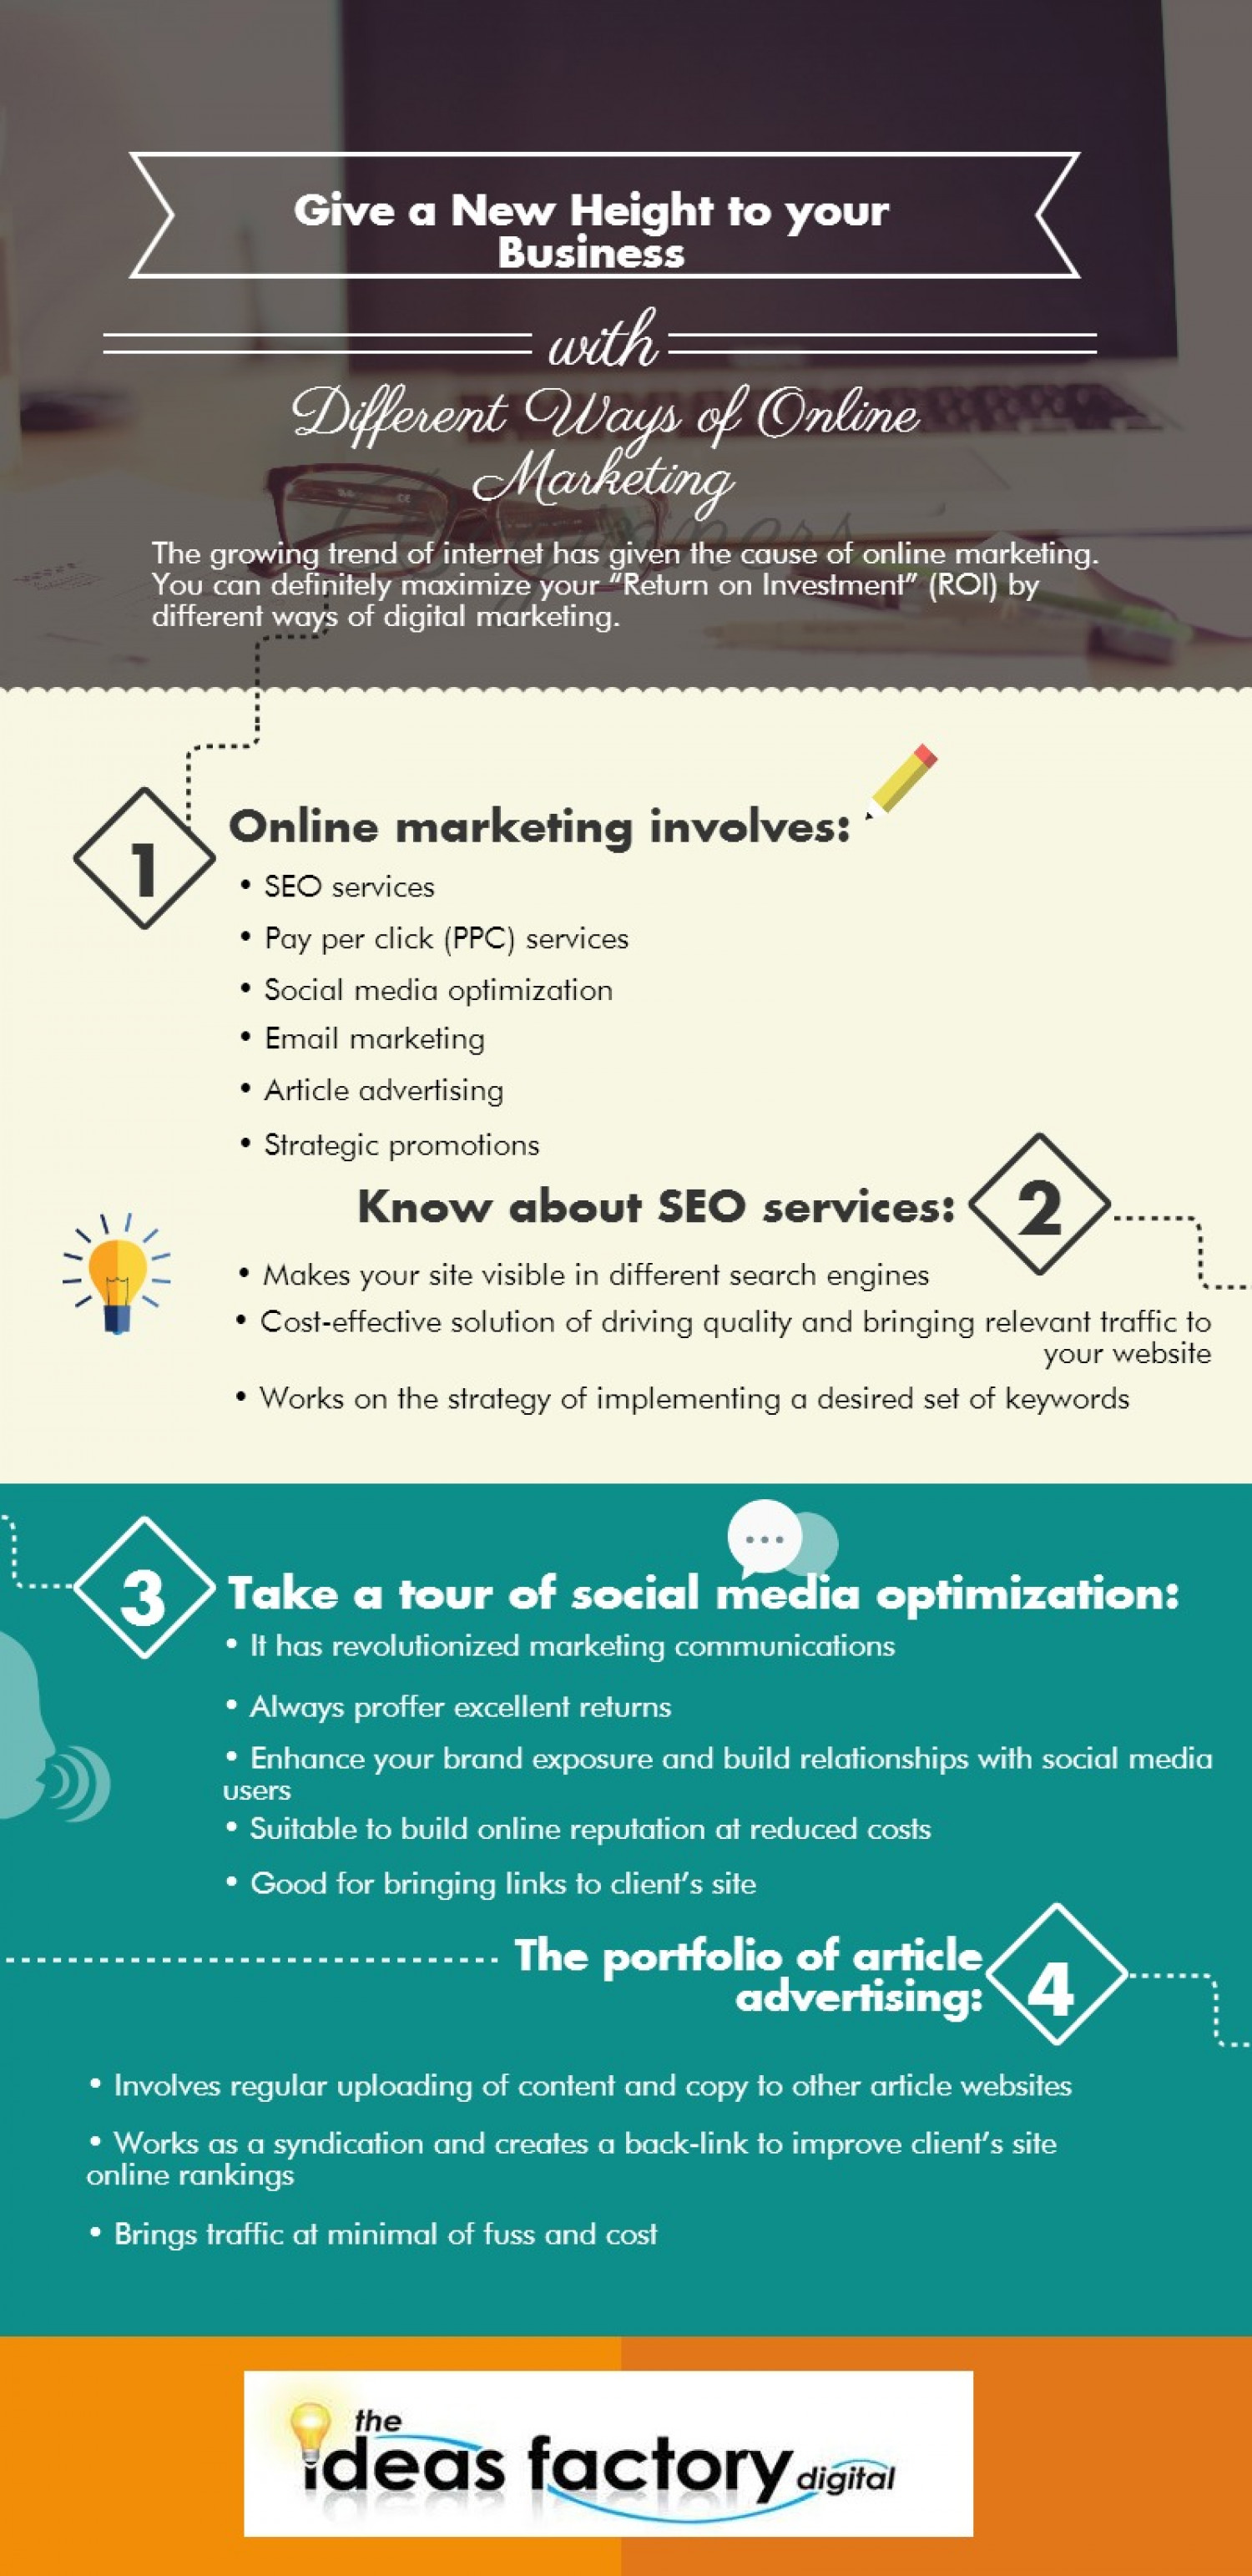 Give a New Height to your Business with Different Ways of Online Marketing Infographic